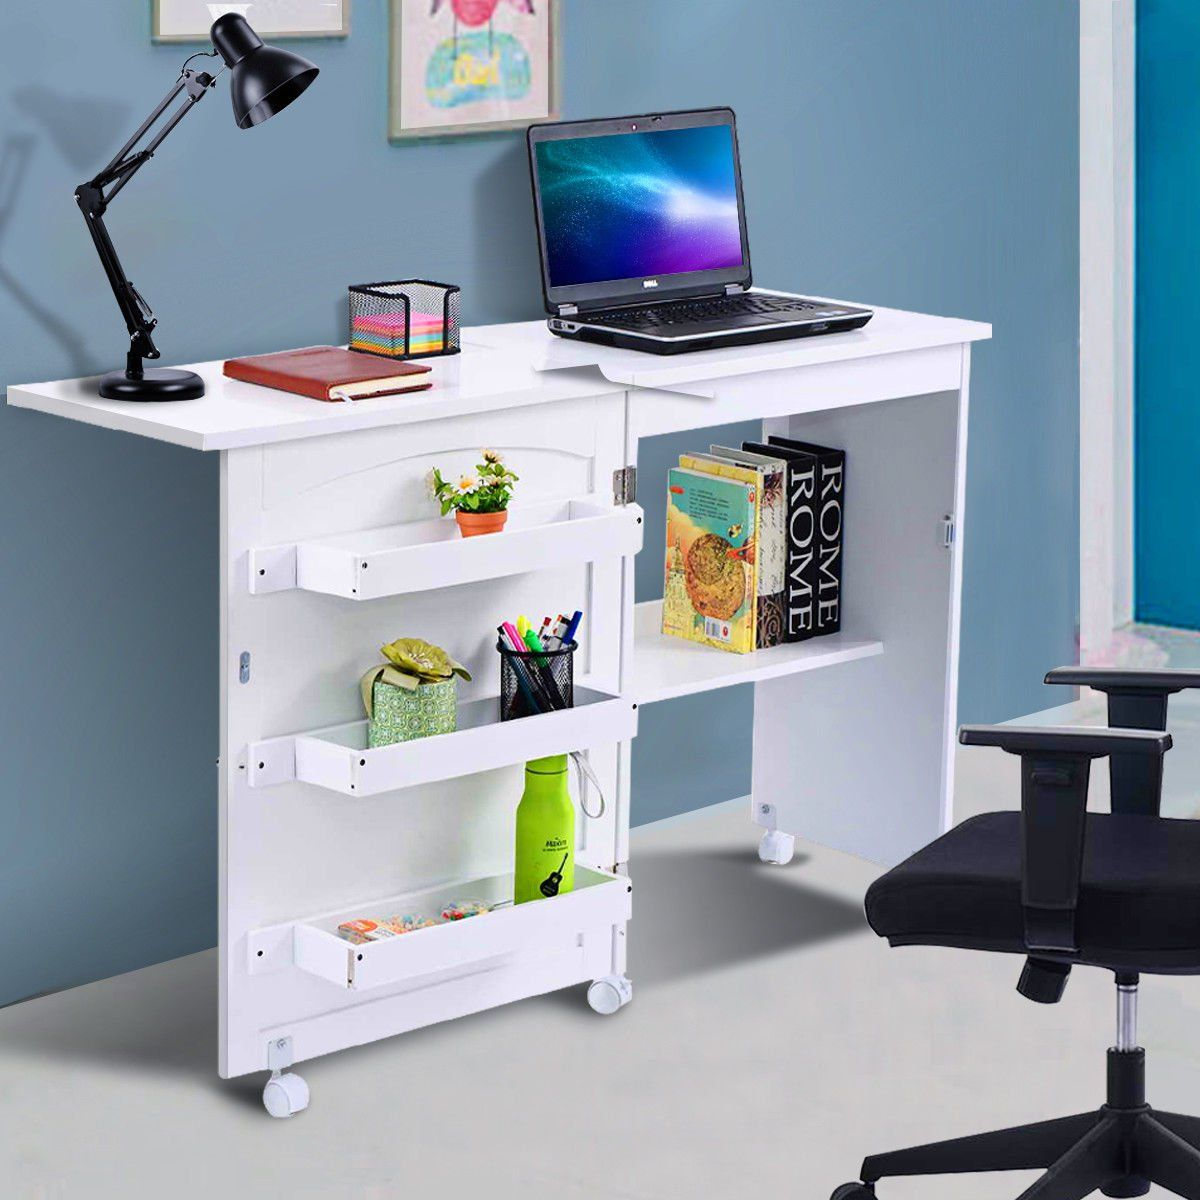 Costway White Folding Swing Craft Table Shelves Storage Cabinet Home Furniture W Wheels Walmart Com Storage Cabinet Shelves Storage Shelves Table Shelves